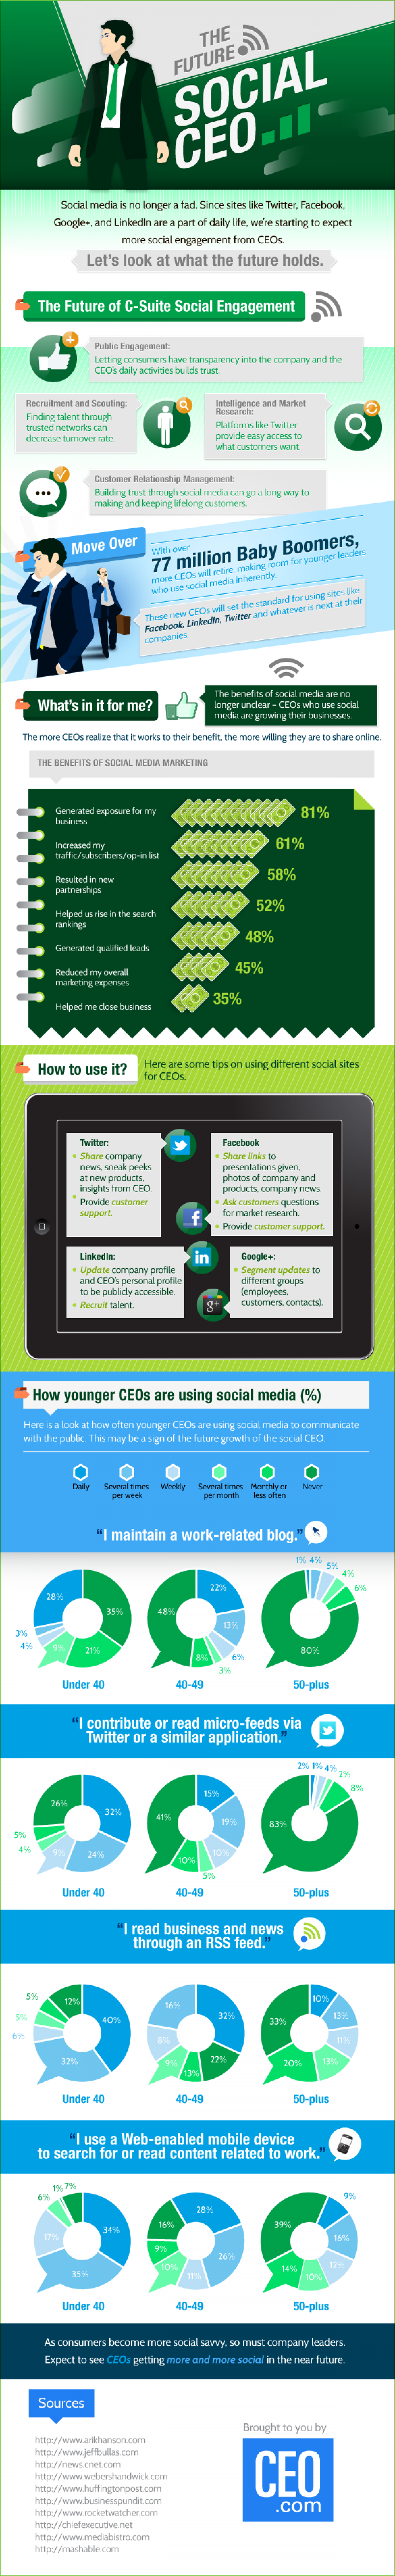 The Future, Social CEO Infographic